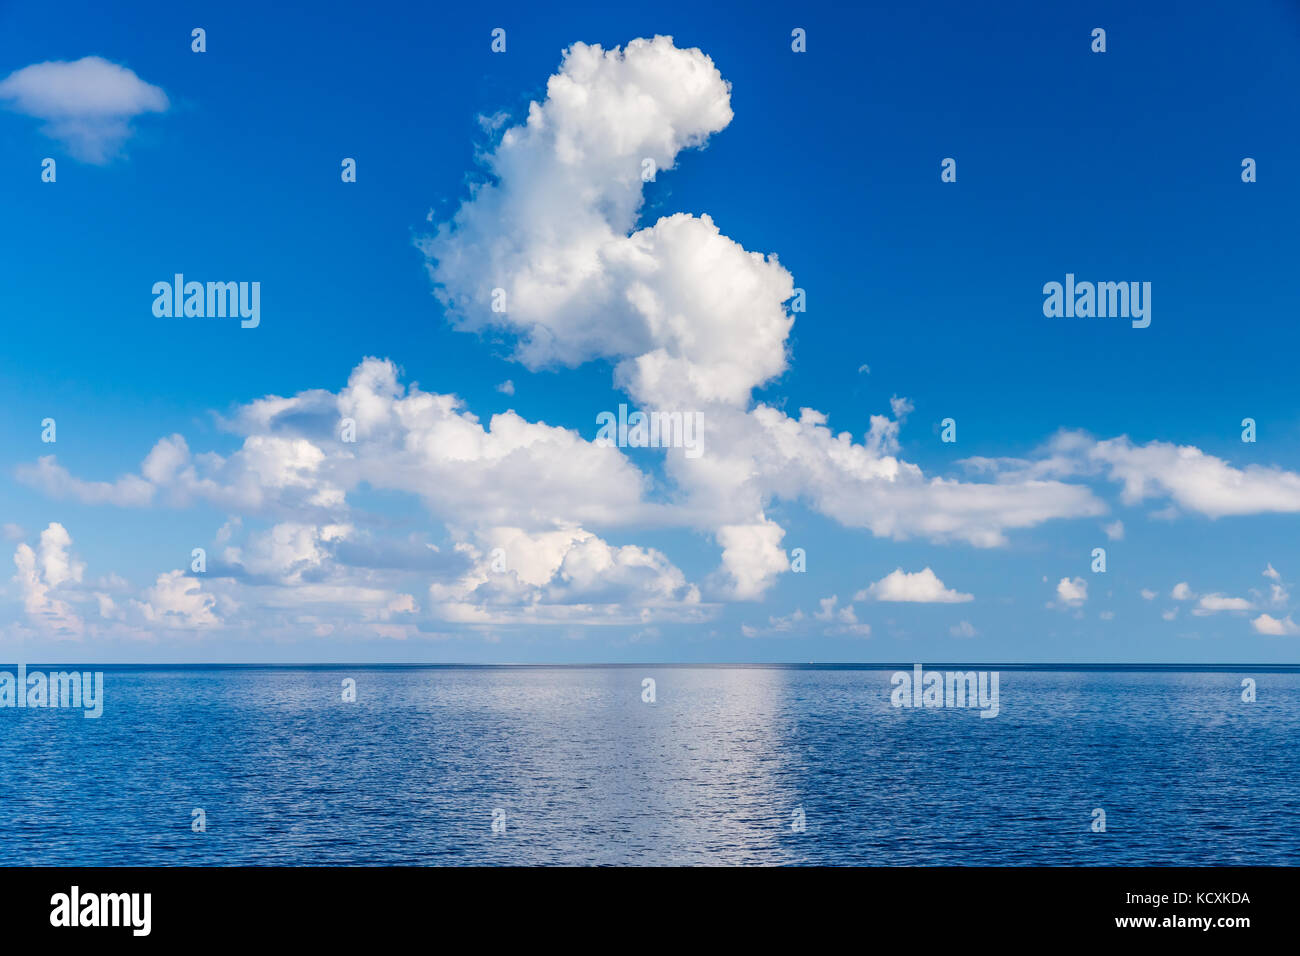 Beautiful clouds over ocean - Stock Image